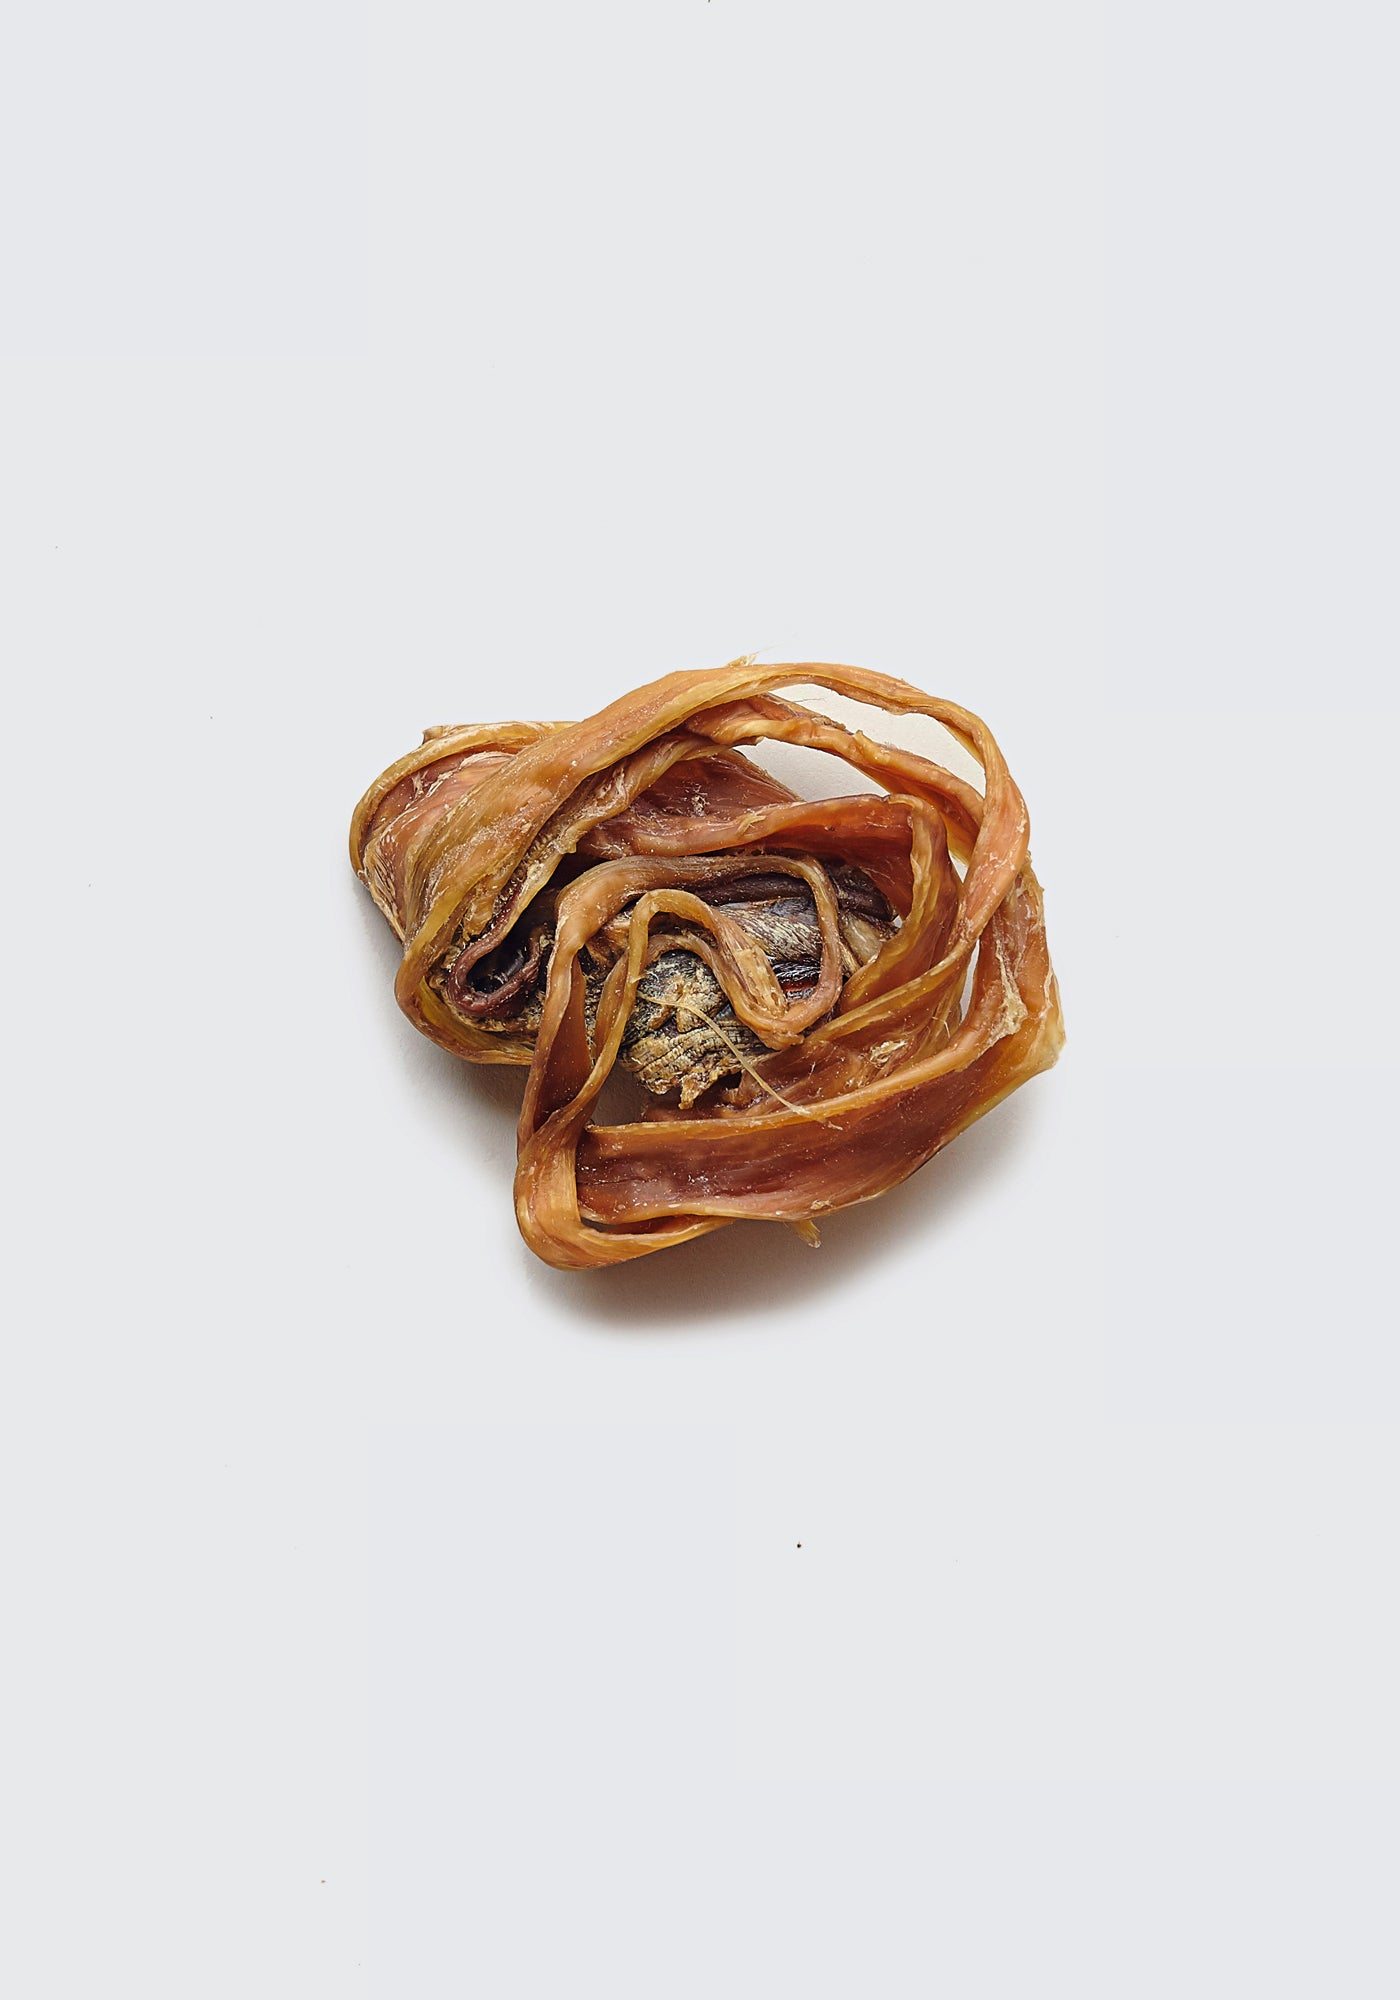 Veal swirl (single)